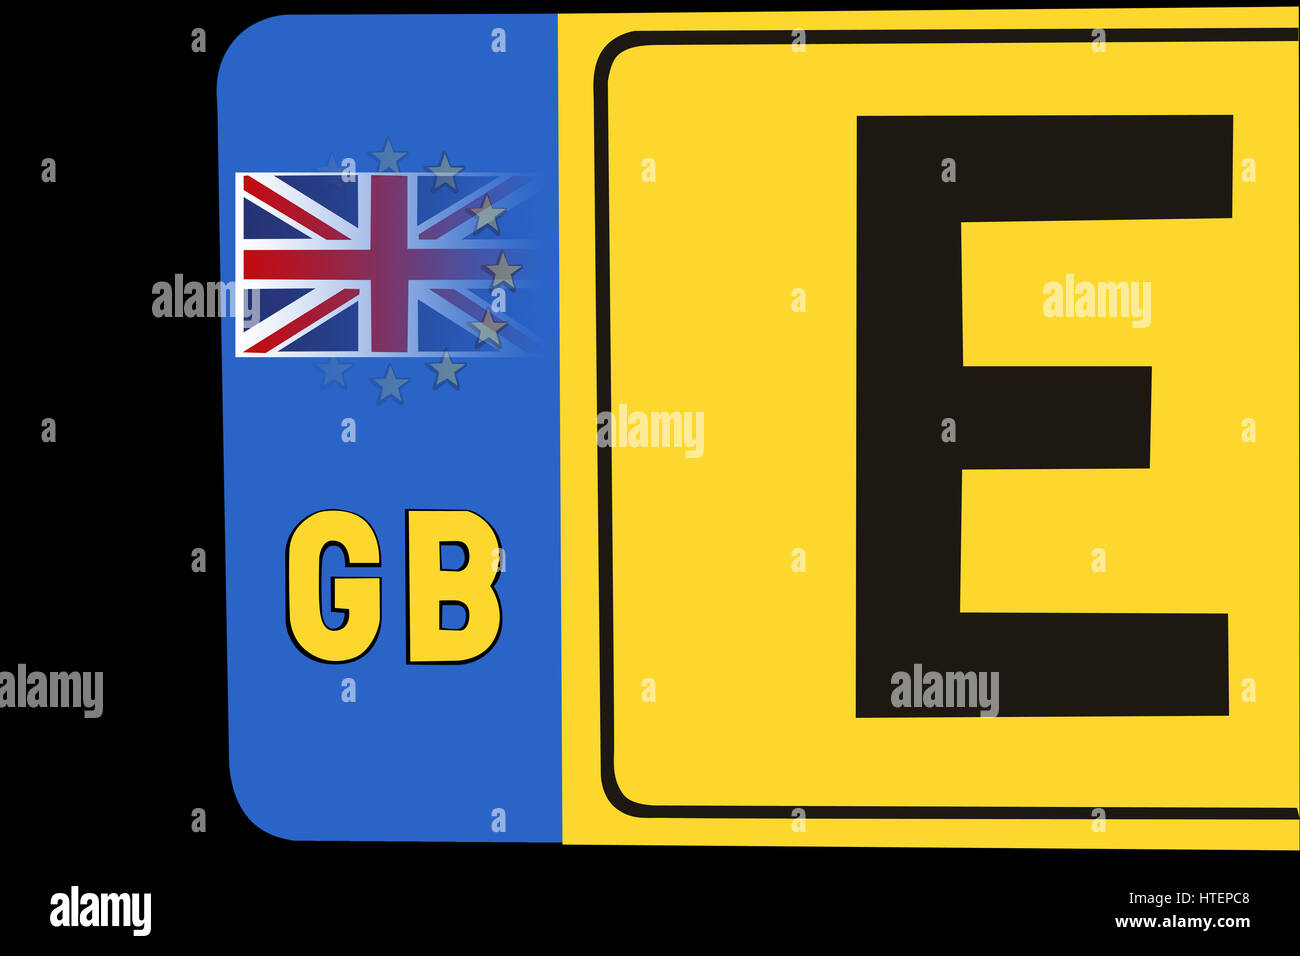 A Gb Car Number Plate With The European Symbol Fading Out And The